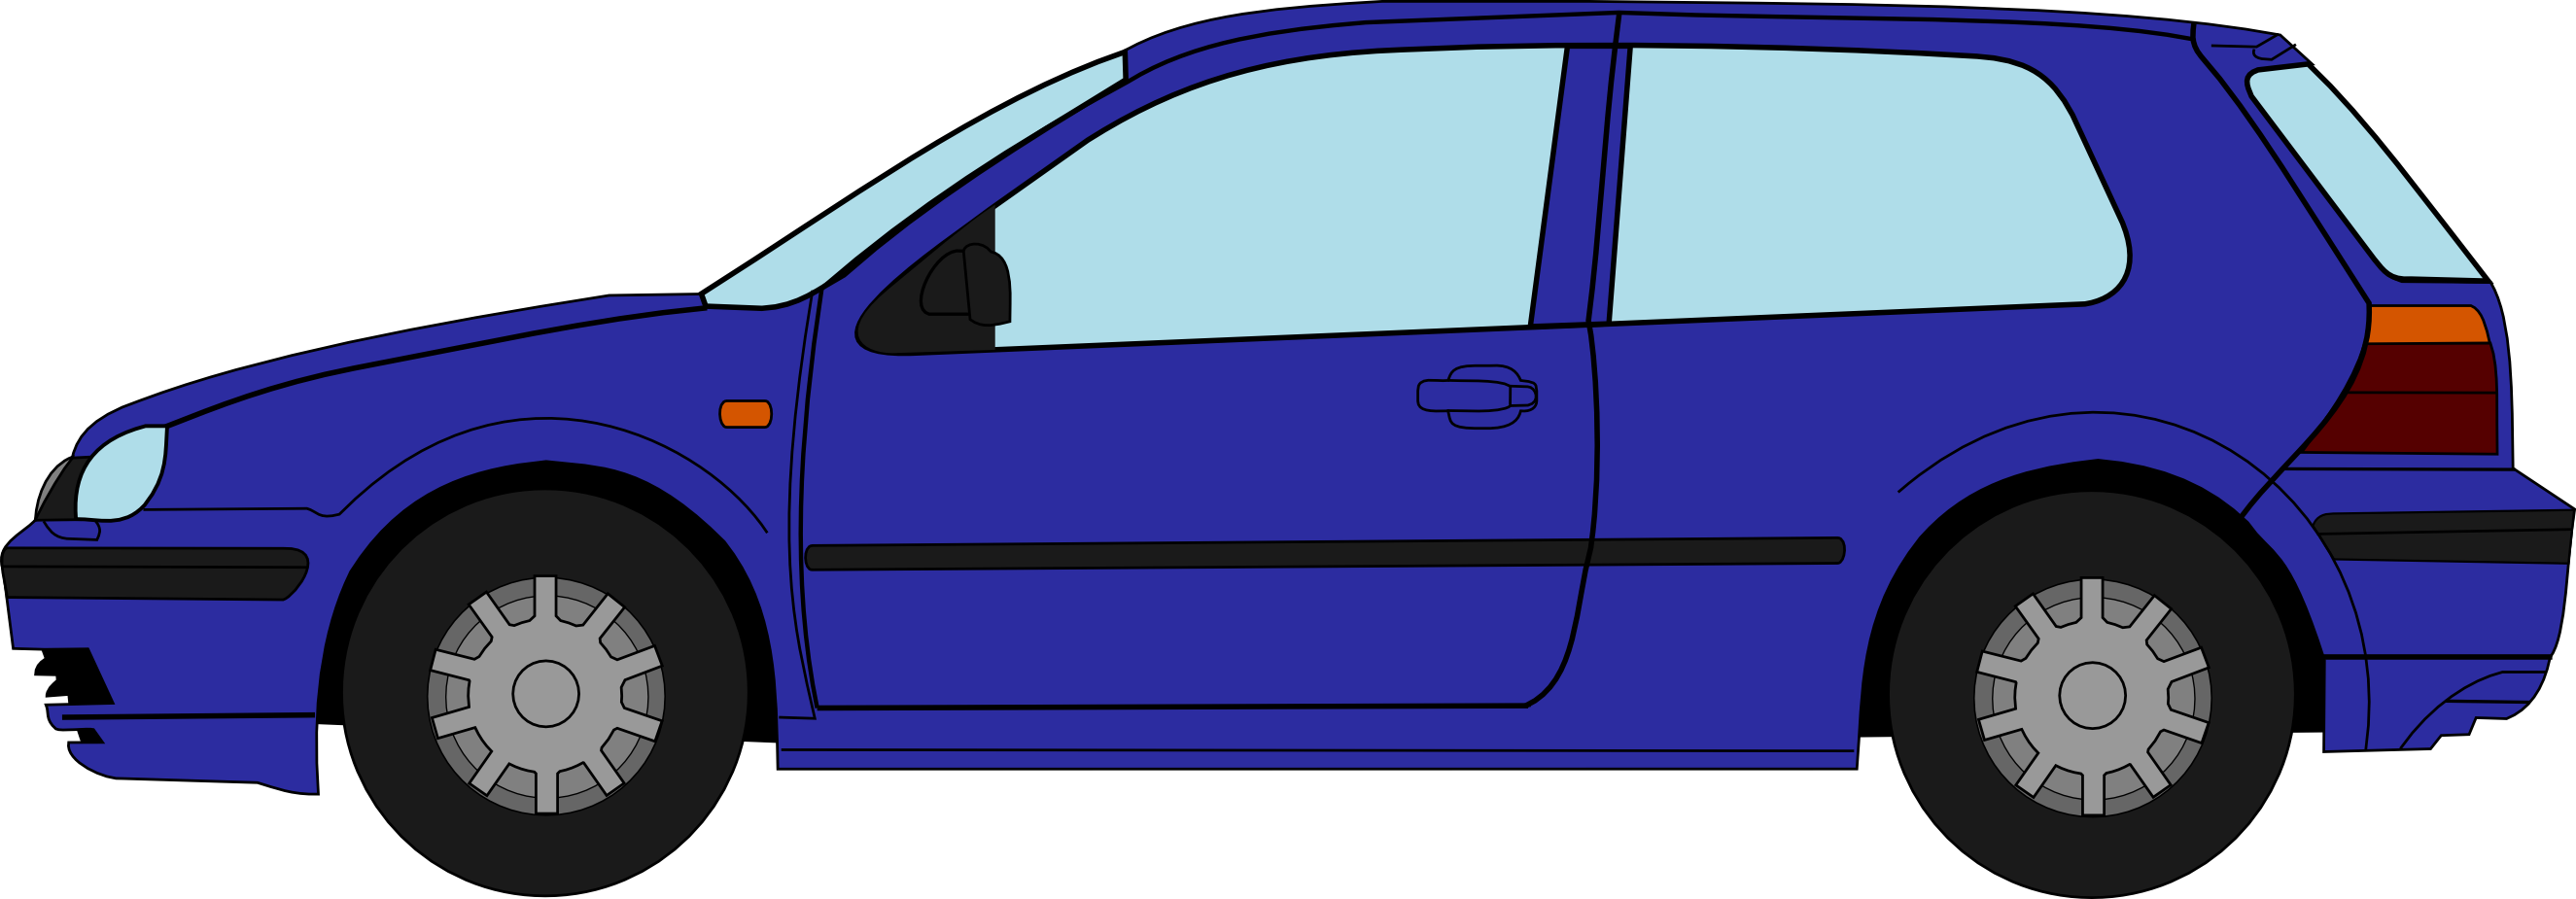 Volkswagen drawing vw polo. Collection of golf